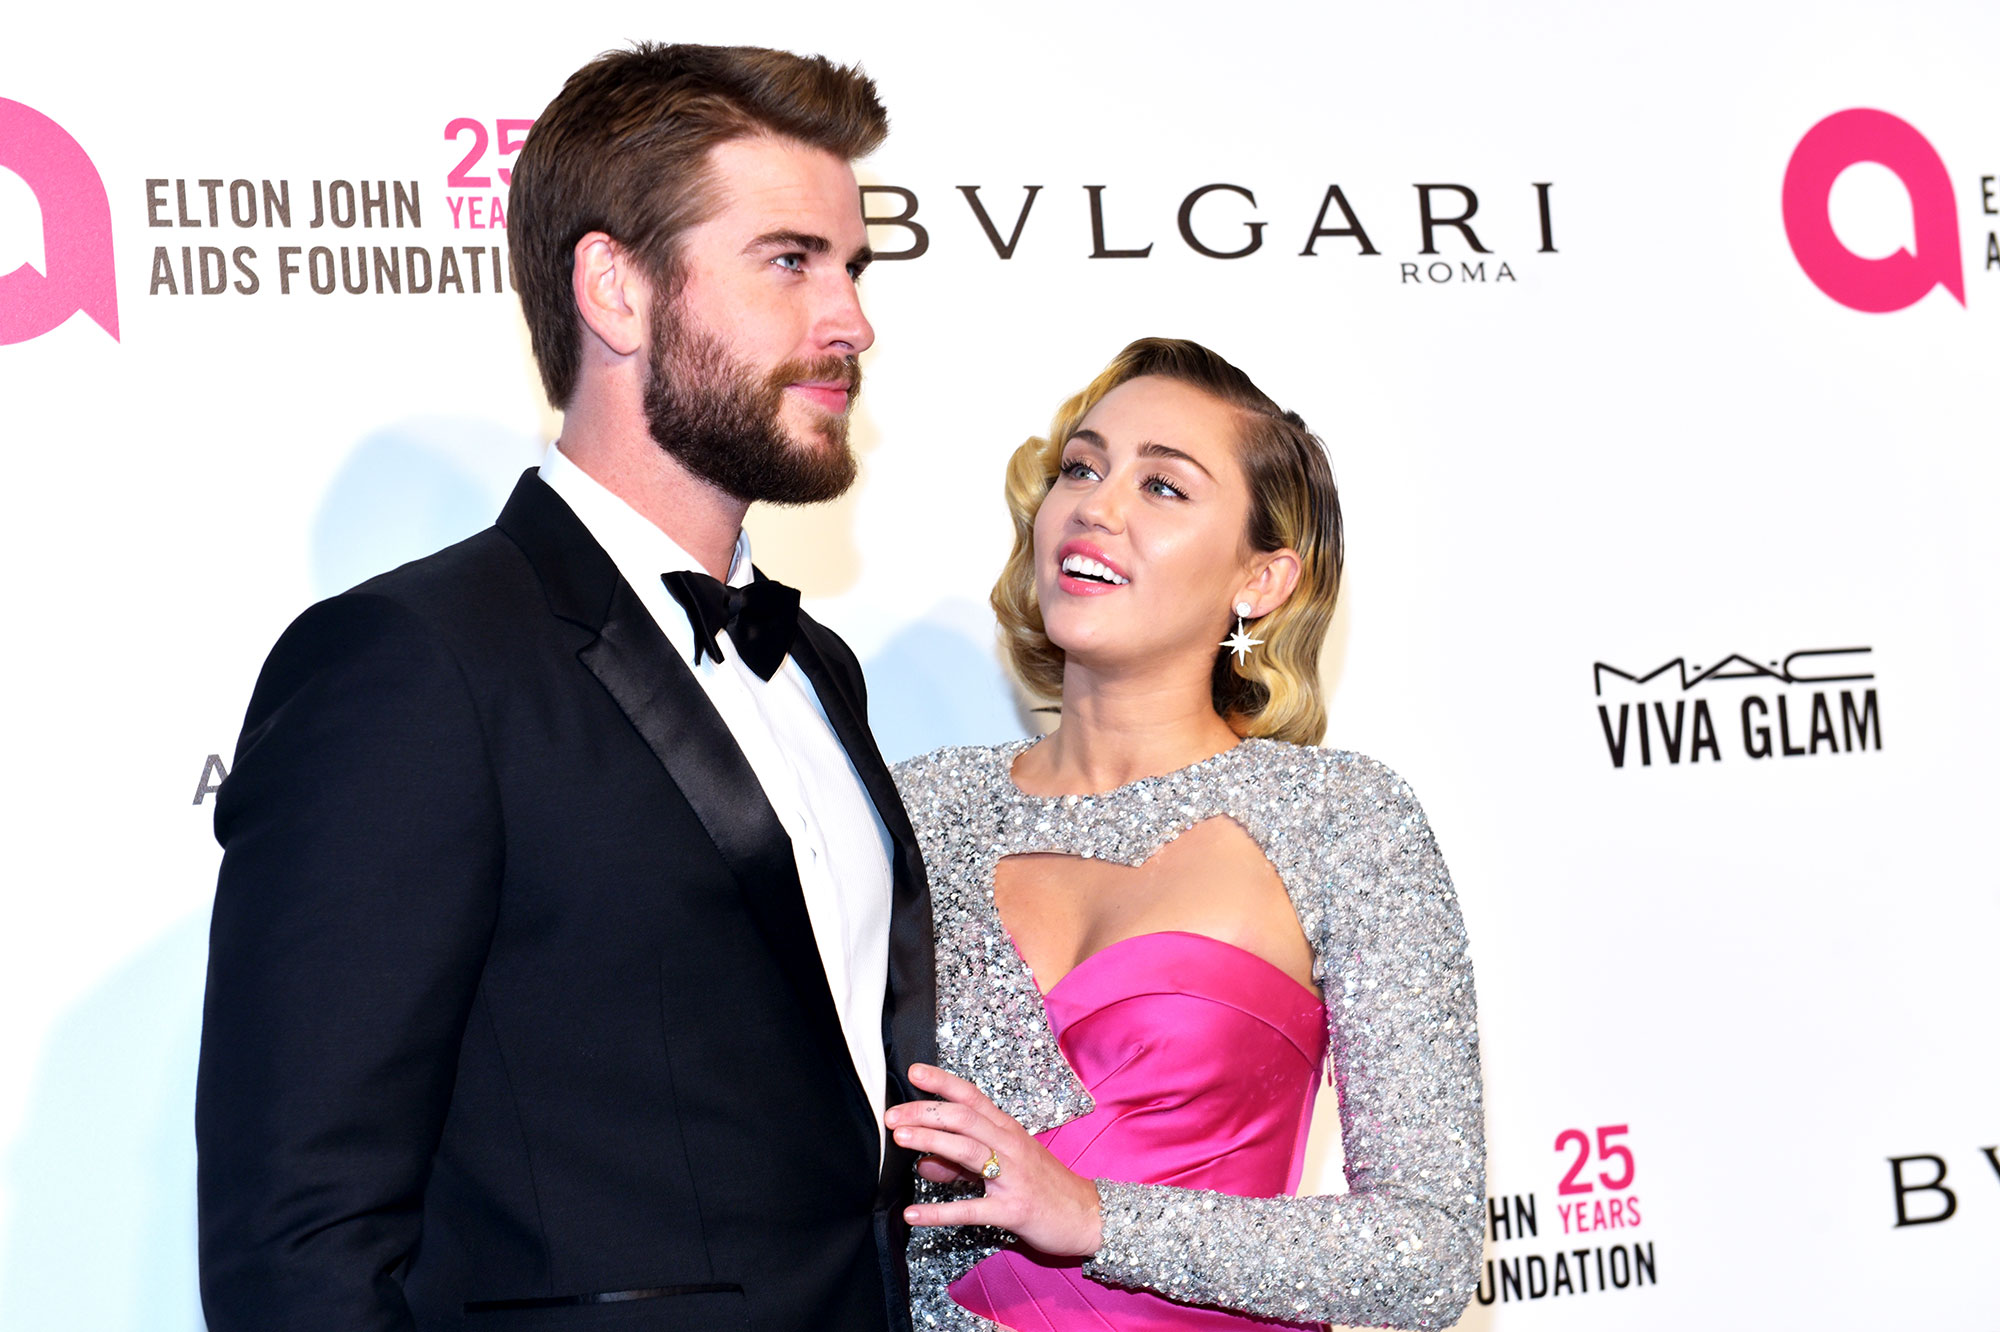 Liam Hemsworth Miley Cyrus - Liam Hemsworth (L) and Miley Cyrus attend the 26th annual Elton John AIDS Foundation's Academy Awards Viewing Party at The City of West Hollywood Park on March 4, 2018 in West Hollywood, California.